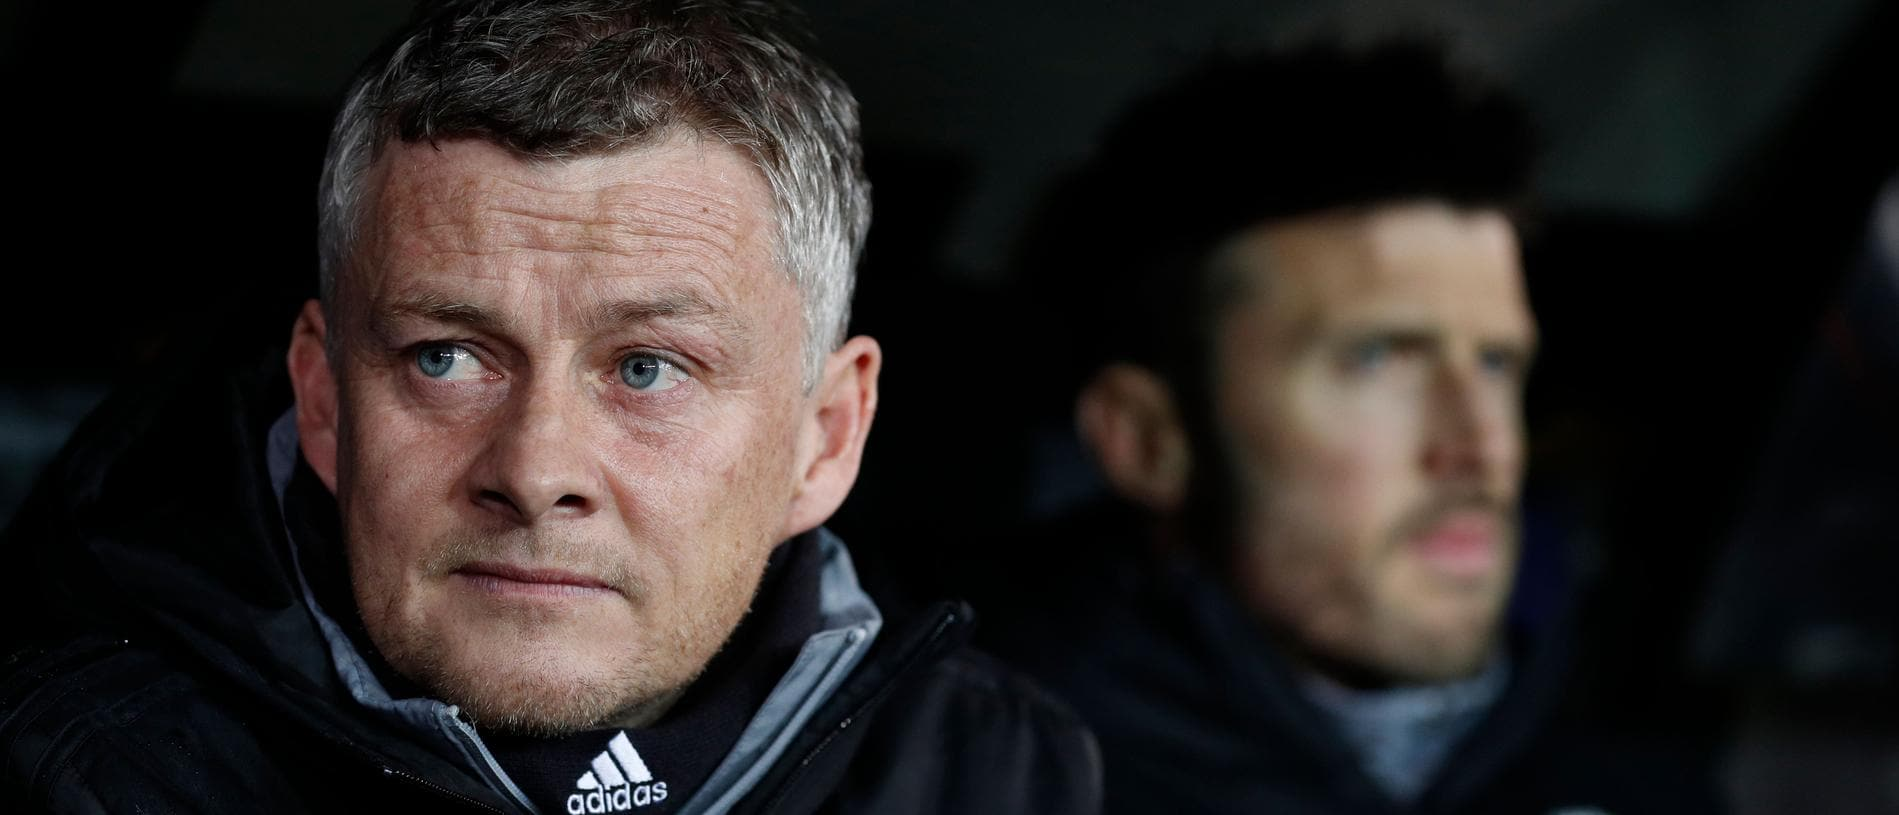 Manchester United's Norwegian manager Ole Gunnar Solskjaer (L)  looks on flanked by Manchester United's English first-team coach Michael Carrick, prior to the UEFA Europa League round of 32 first leg, football match between Club Brugge's and Manchester United, at the Jan Breydel Stadium in Bruges on February 20, 2020. (Photo by Adrian DENNIS / AFP)